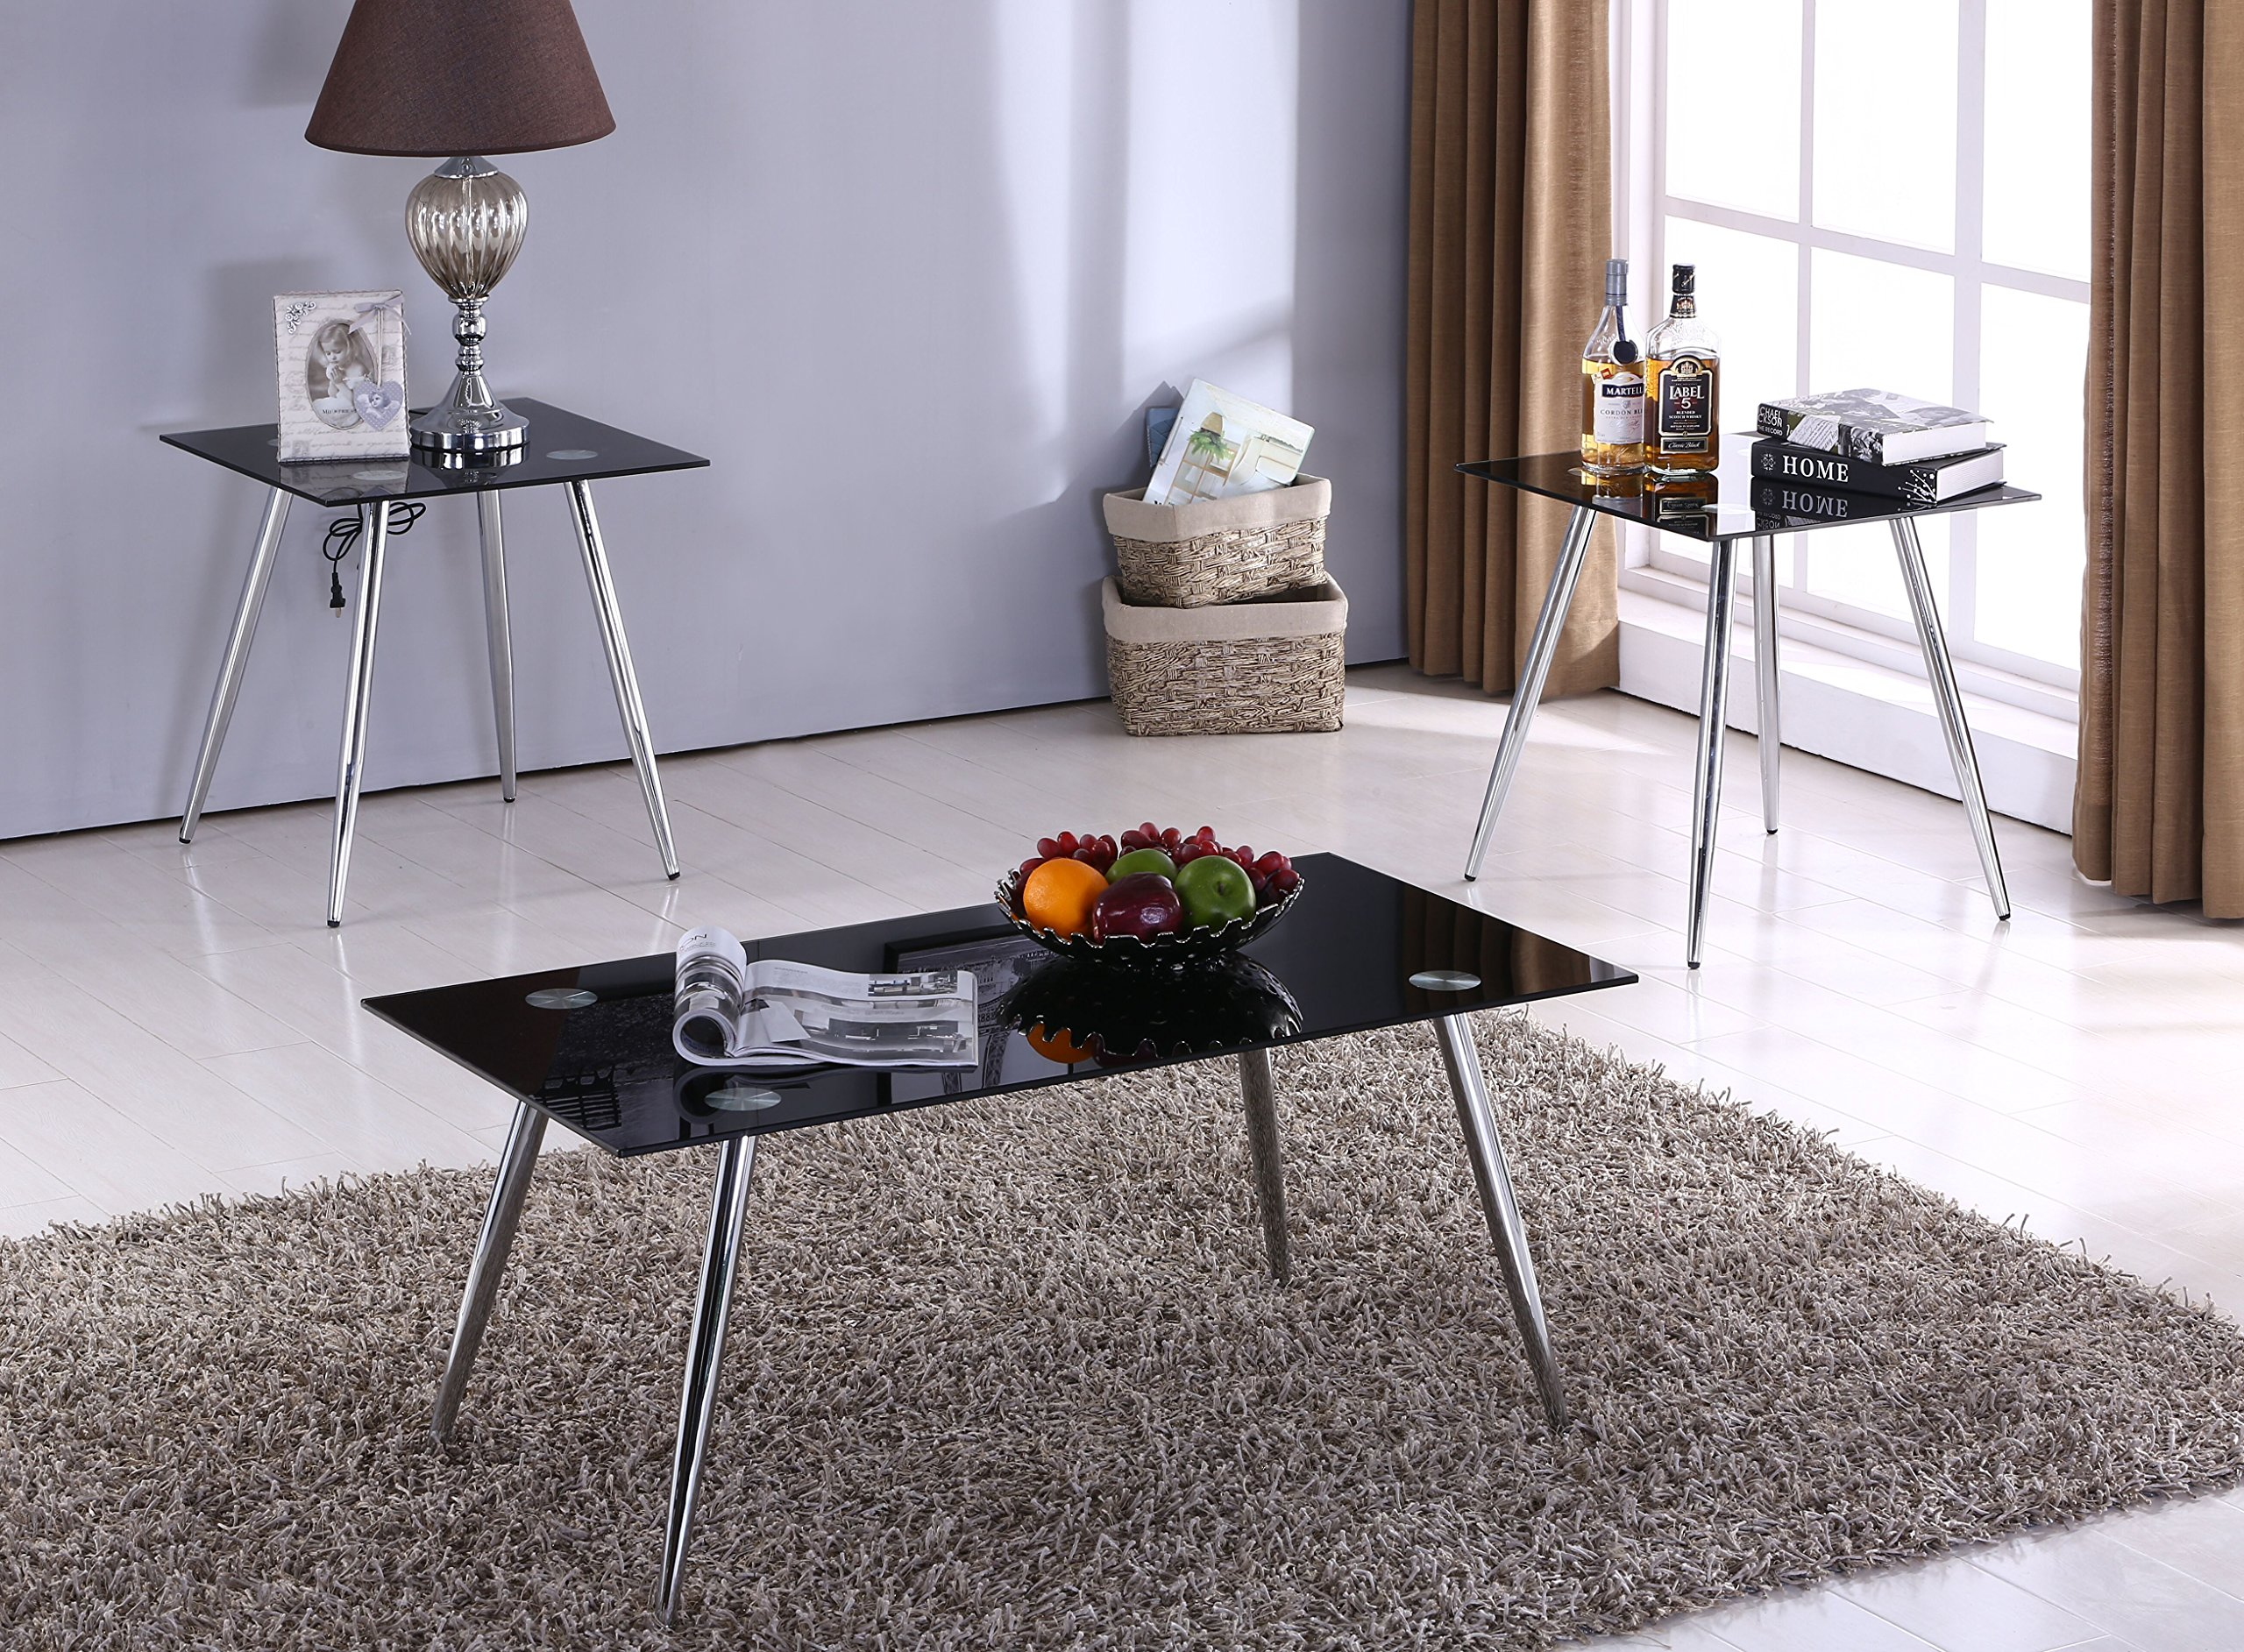 Kings Brand Furniture 3 Piece Glass Coffee Table & 2 End Tables Occasional Set, Chrome/Black